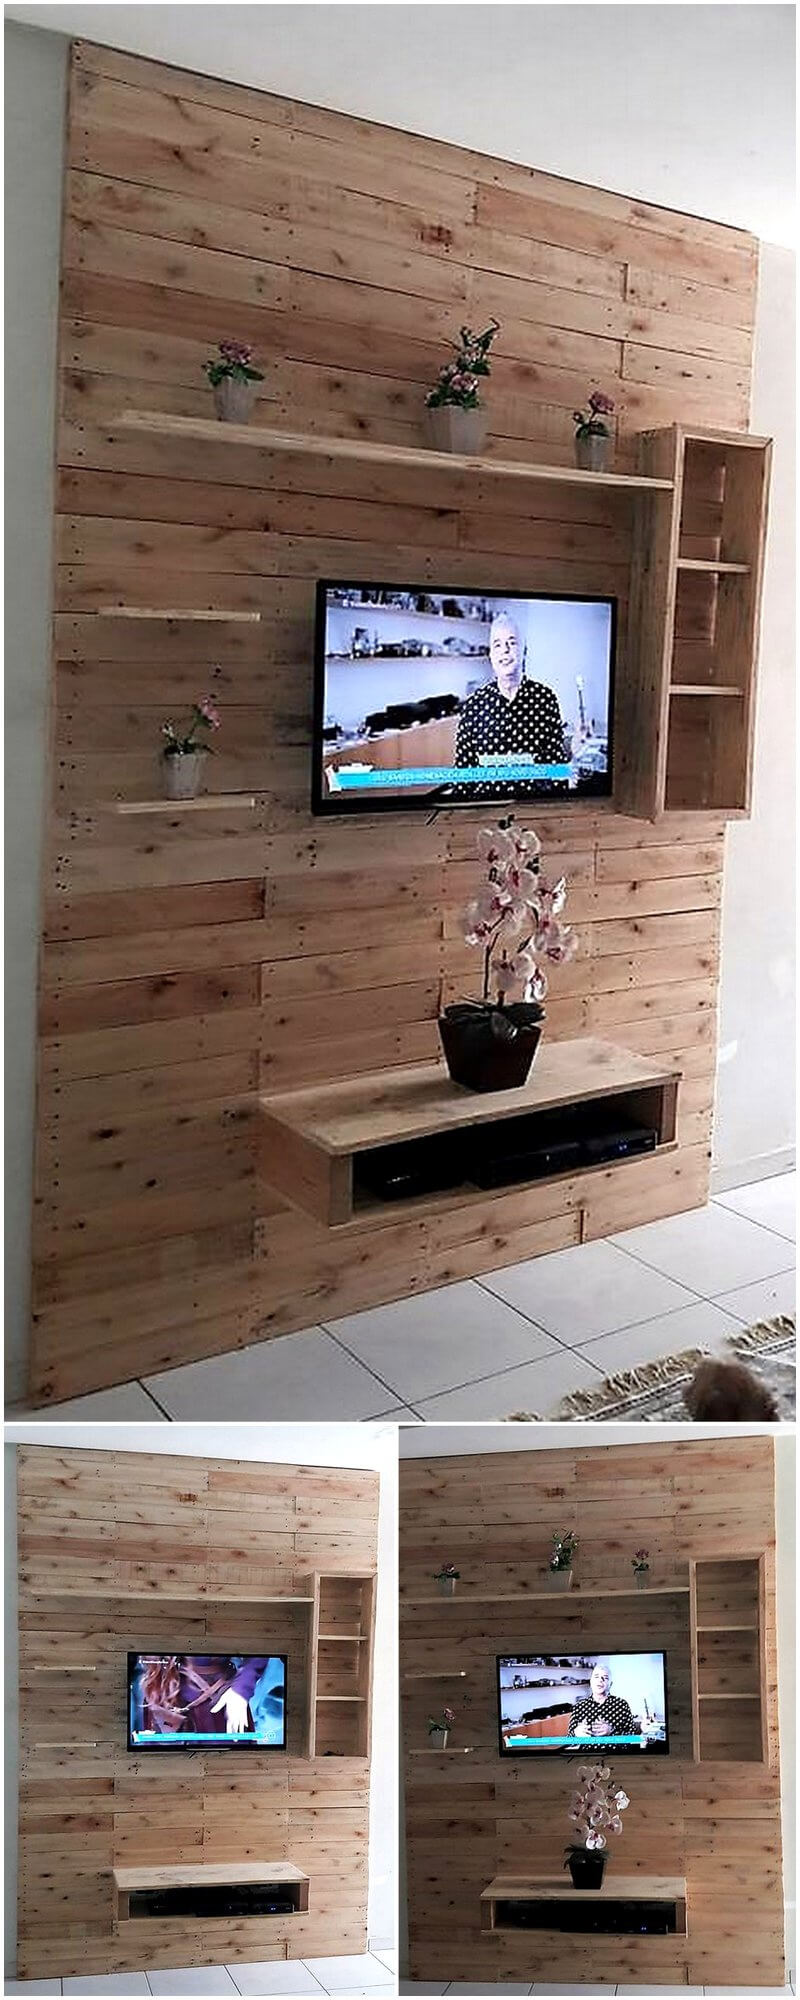 DIY Ideas for Recycled Pallets Reusing | Wood Pallet Furniture